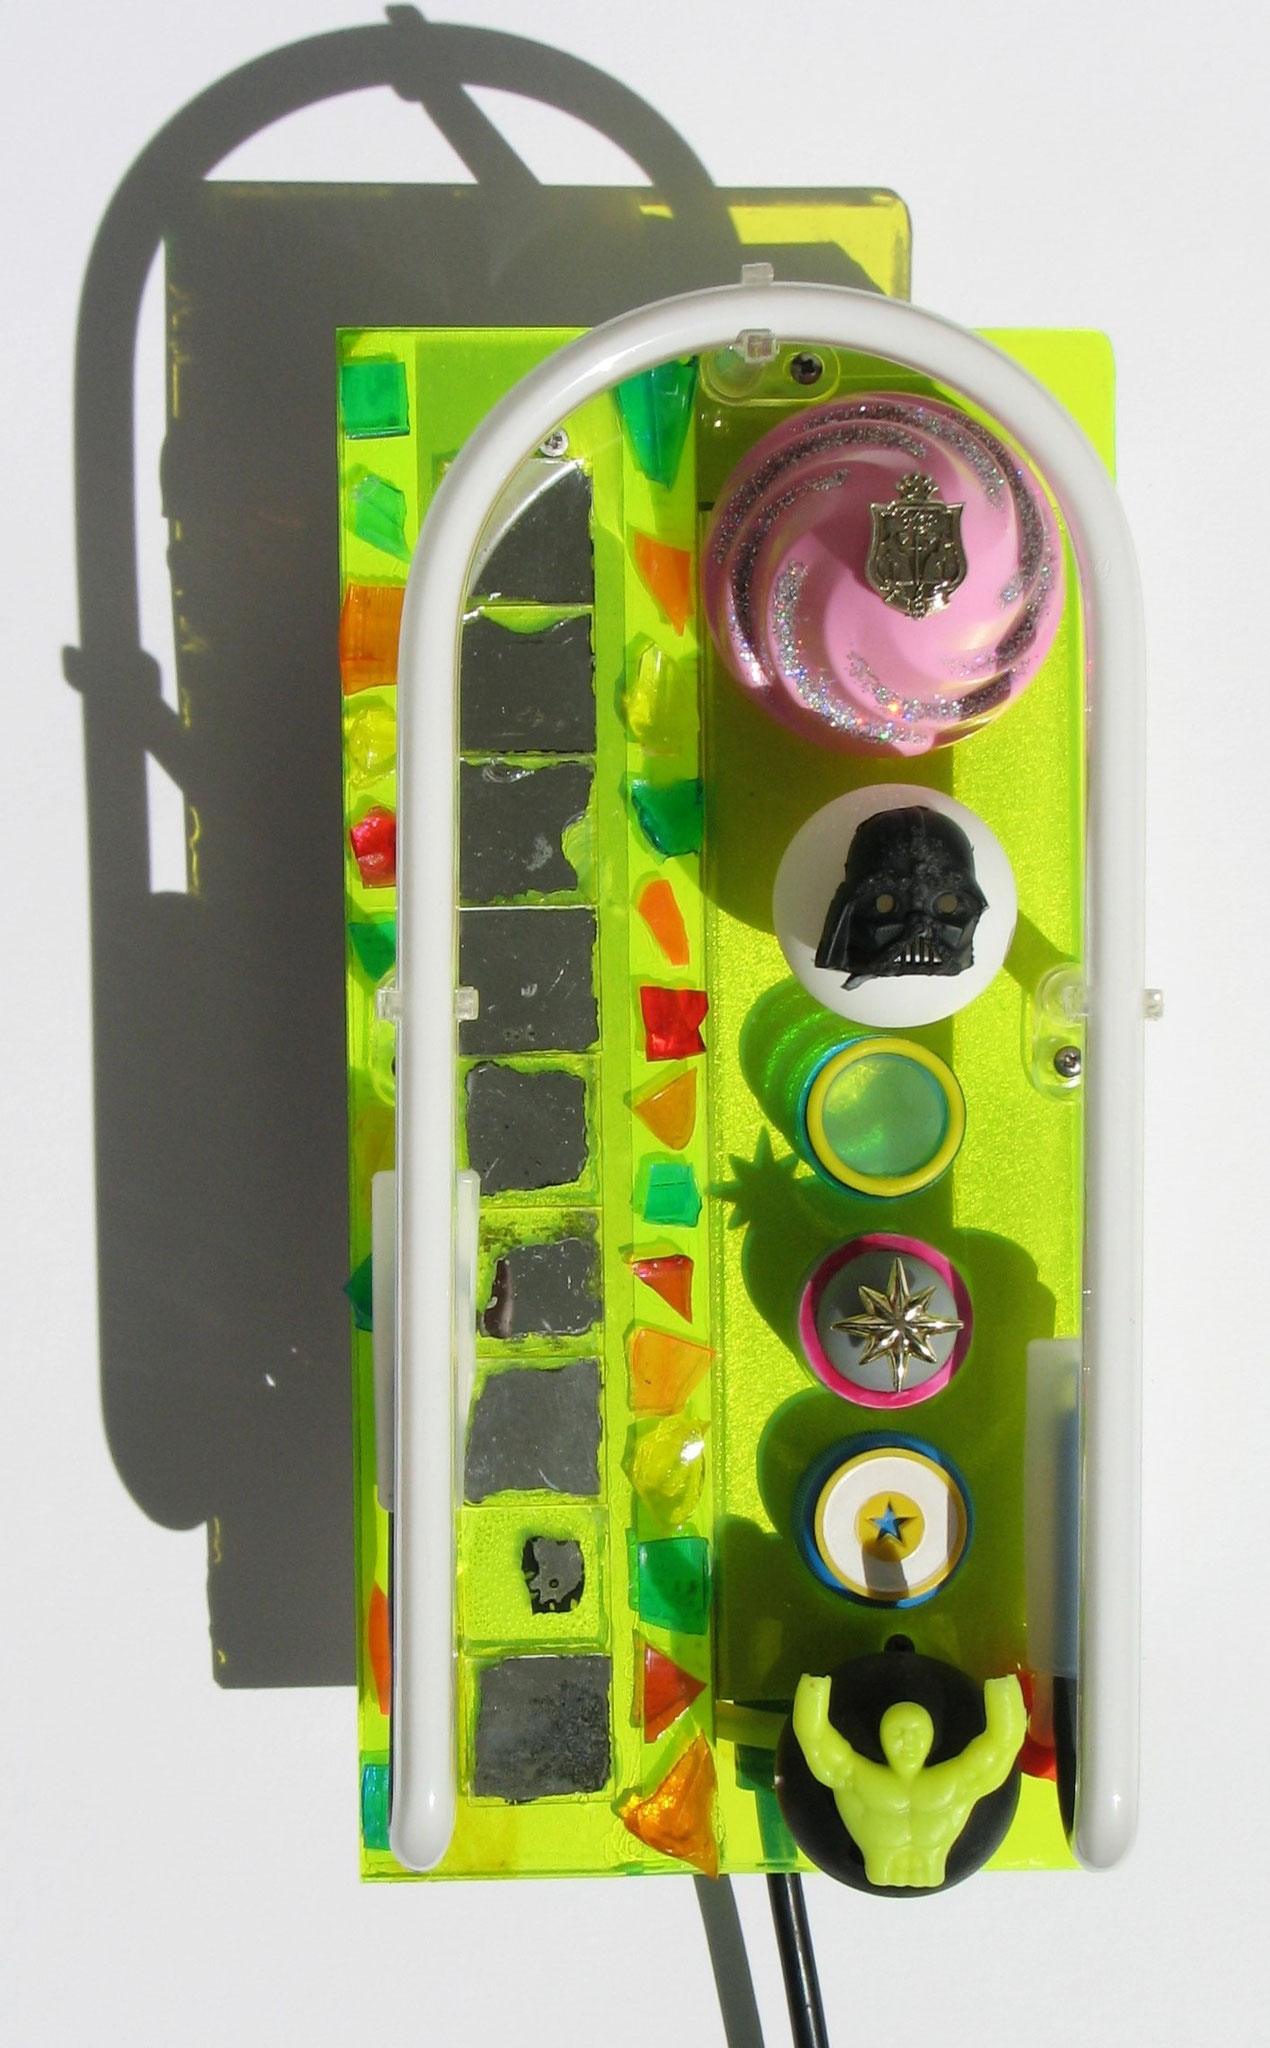 Funfair  2016  Neon light and Mixed Media  26 x 13 cm  thanks to www.sygns.com